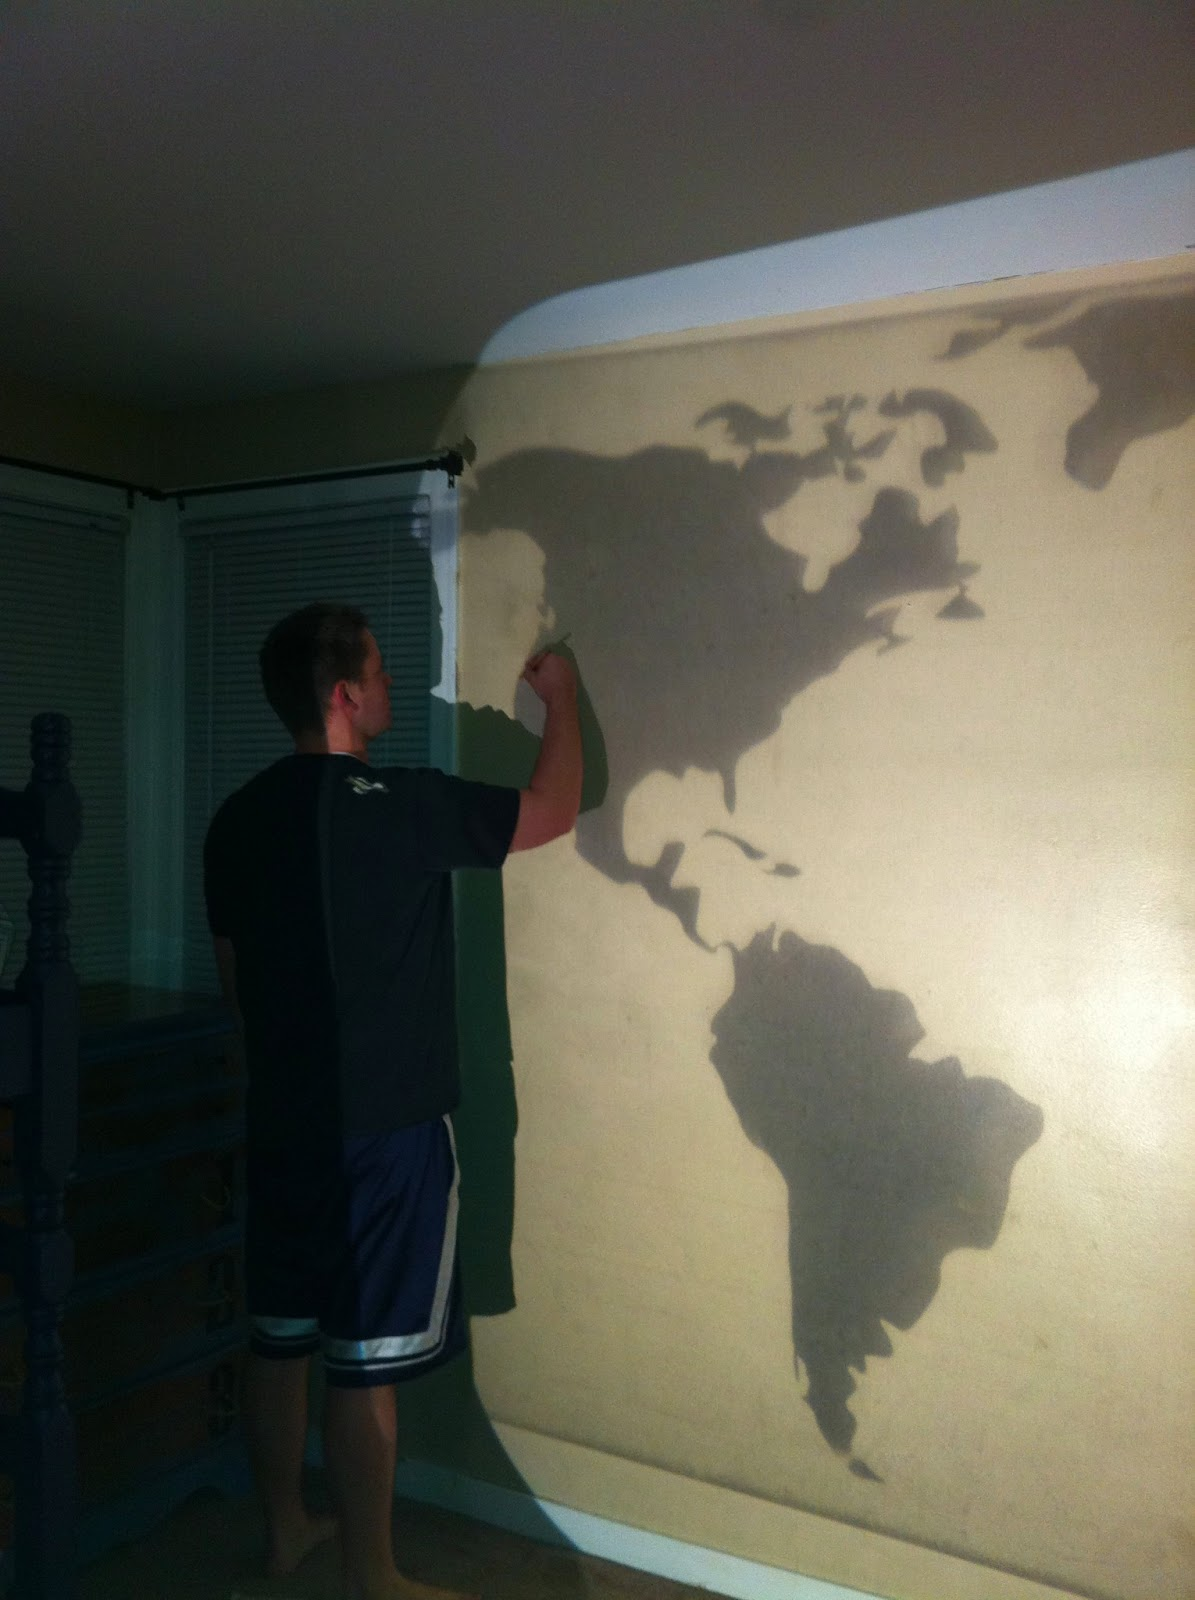 Diy world map wall mural classy clutter for Diy wall photo mural